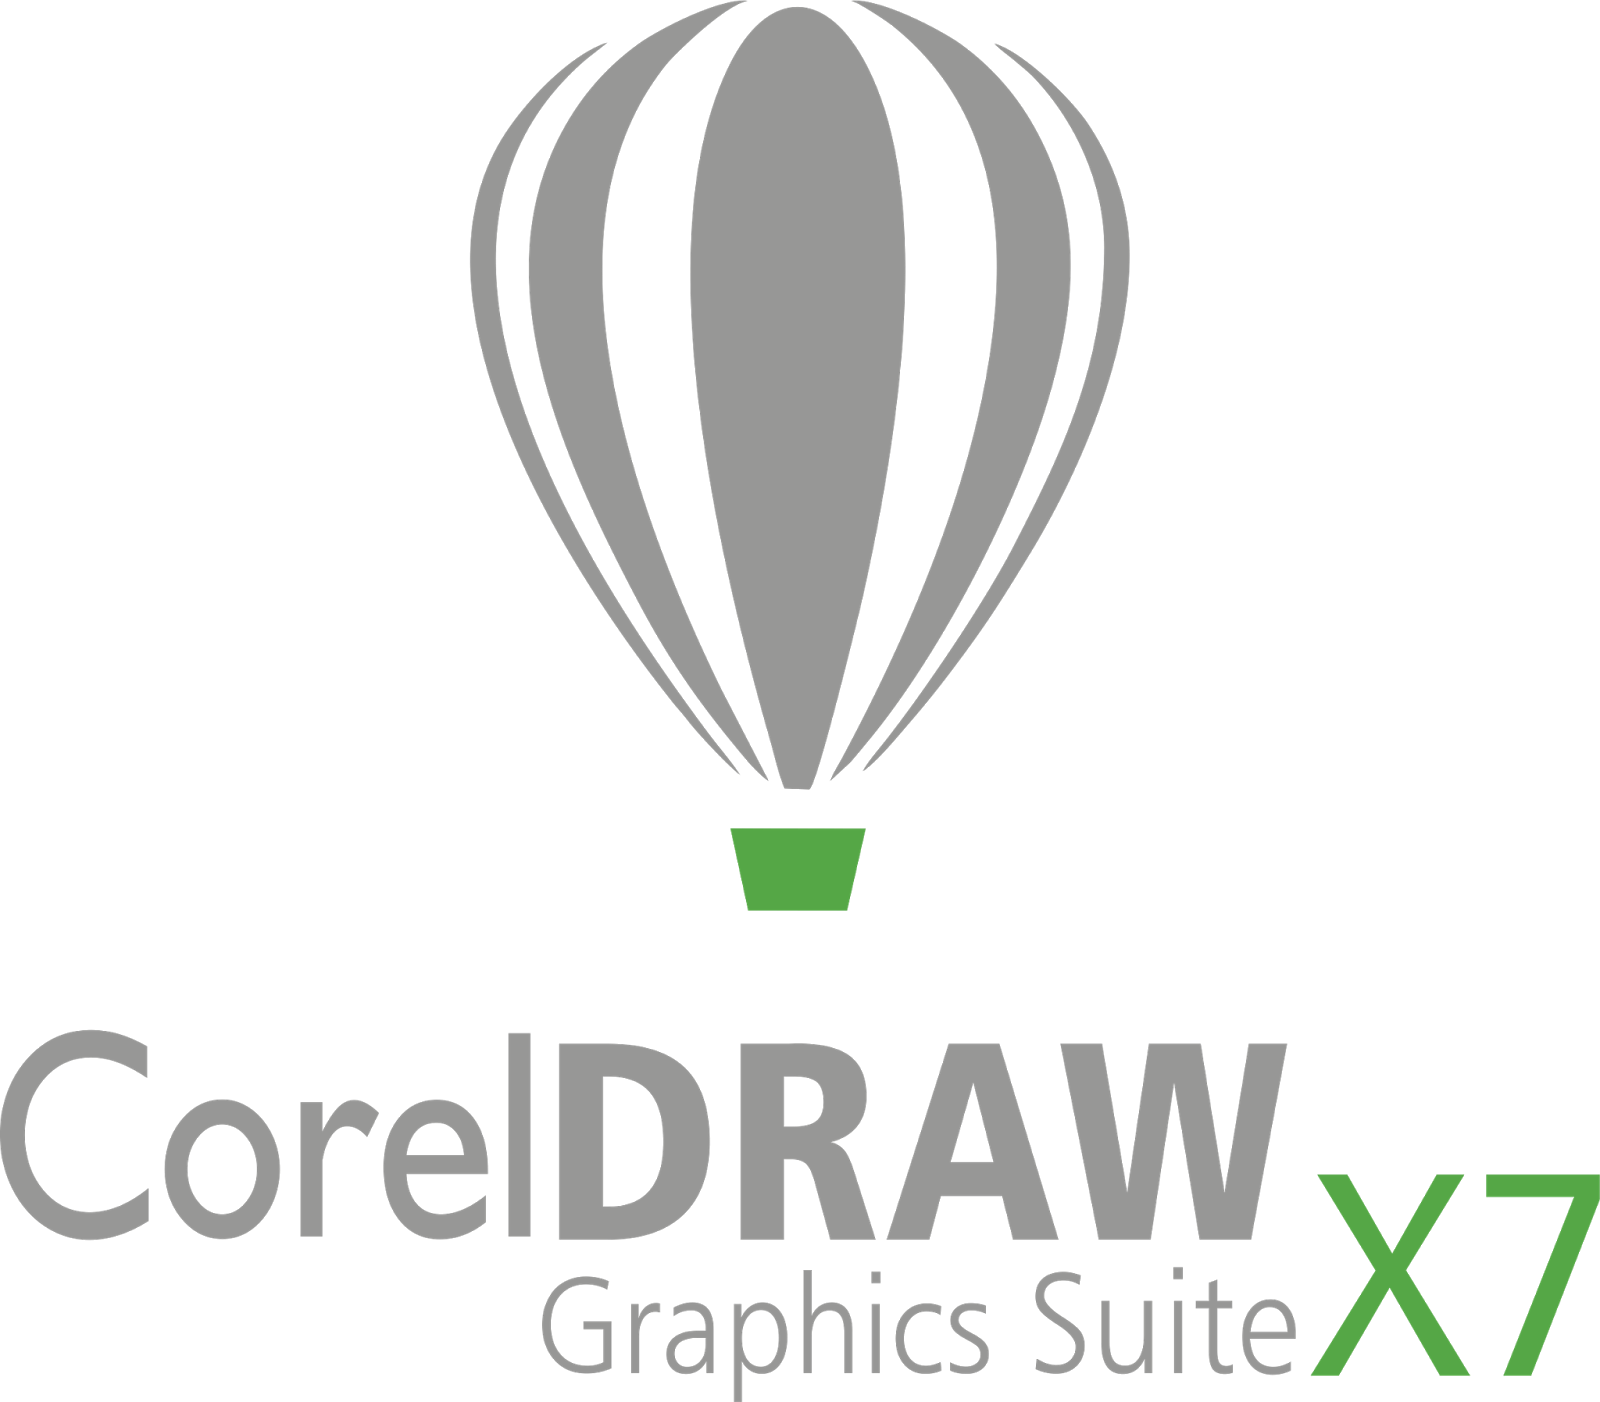 Corel Draw Vector Free image #5689